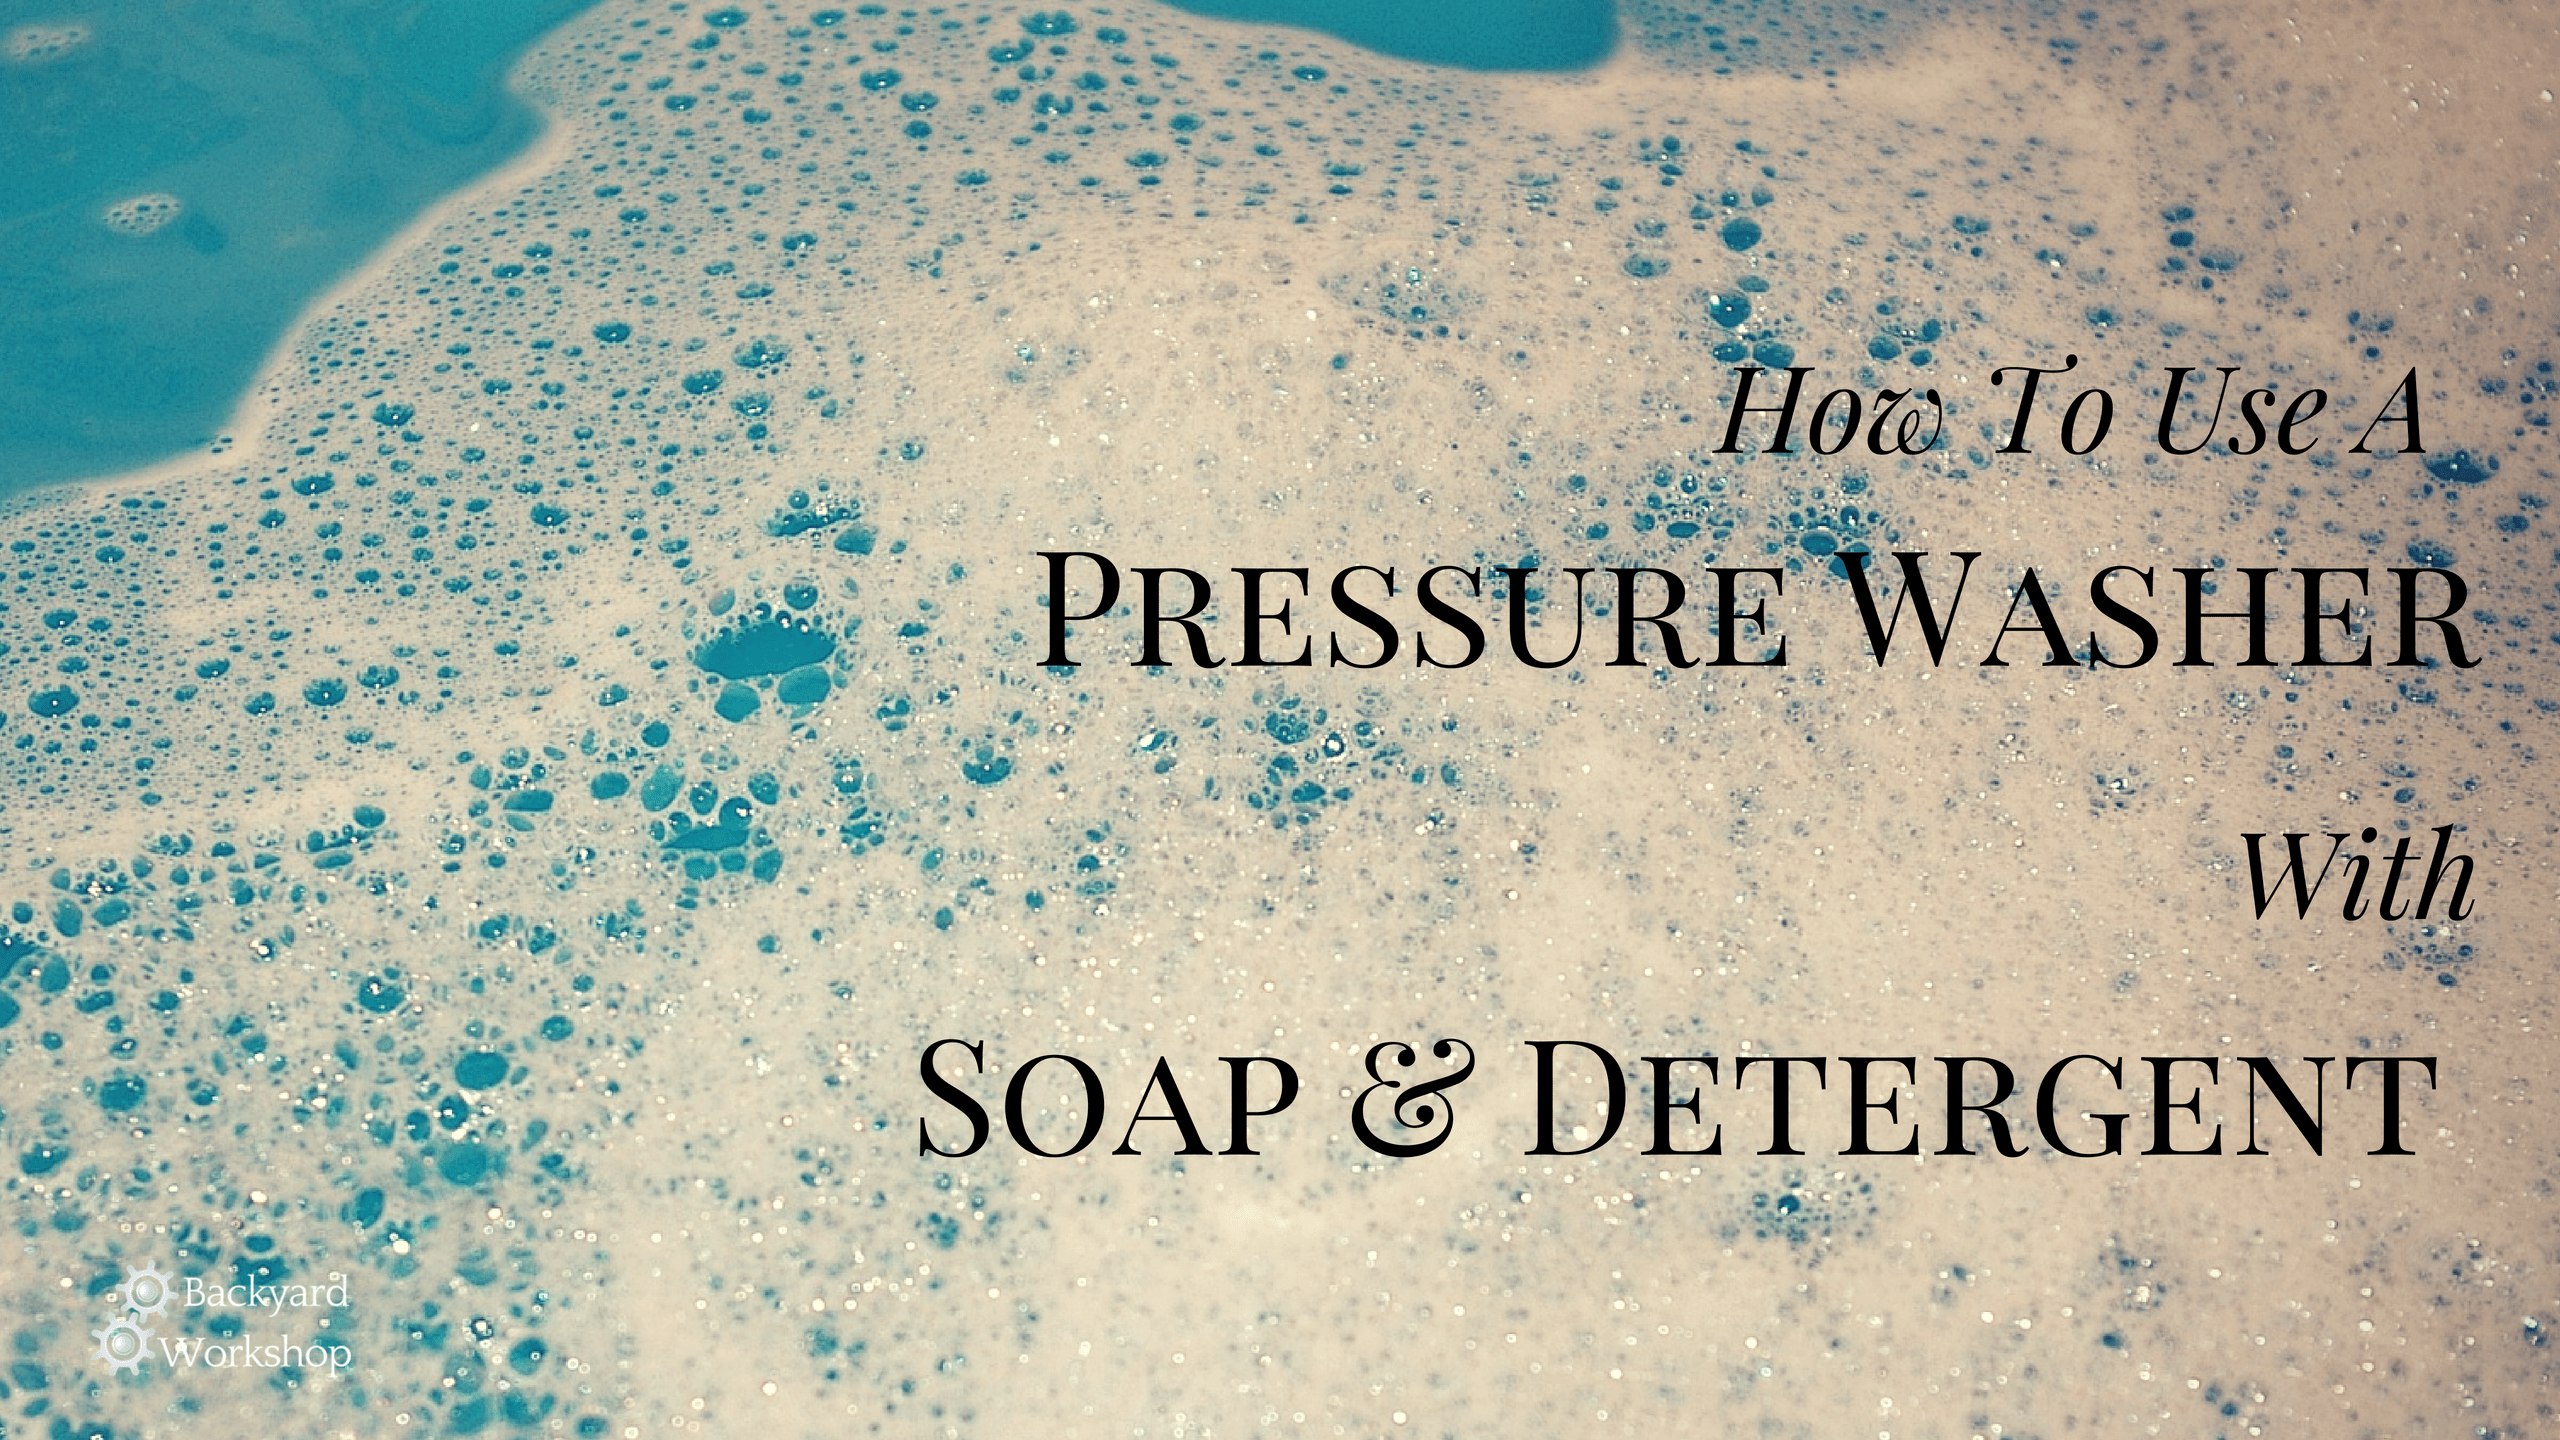 How To Use A Pressure Washer With Soap And Detergent